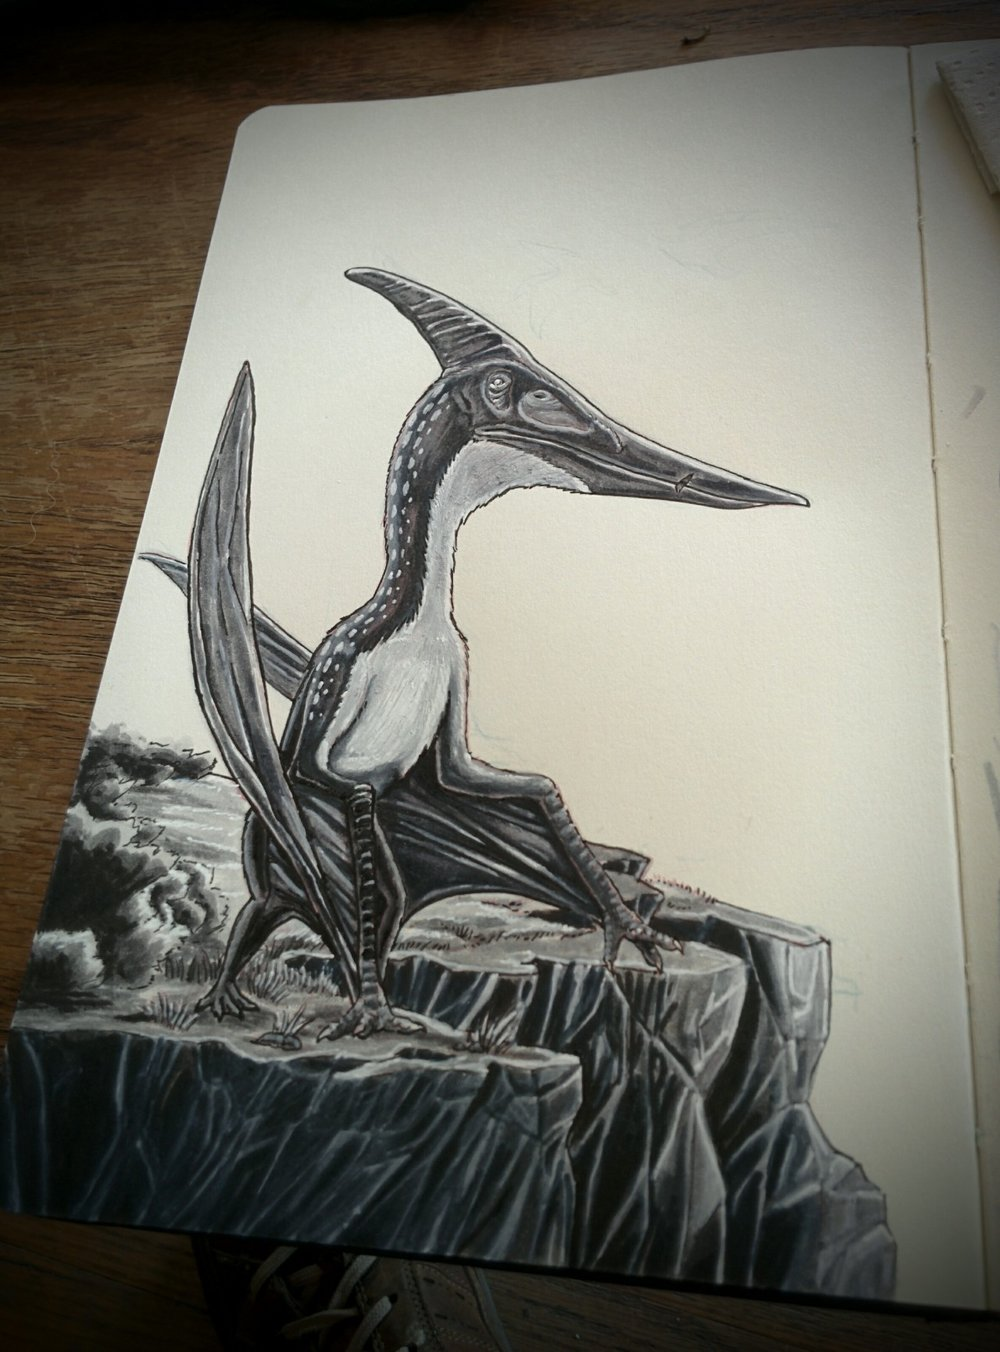 A little Pteranodon art to brighten your day.